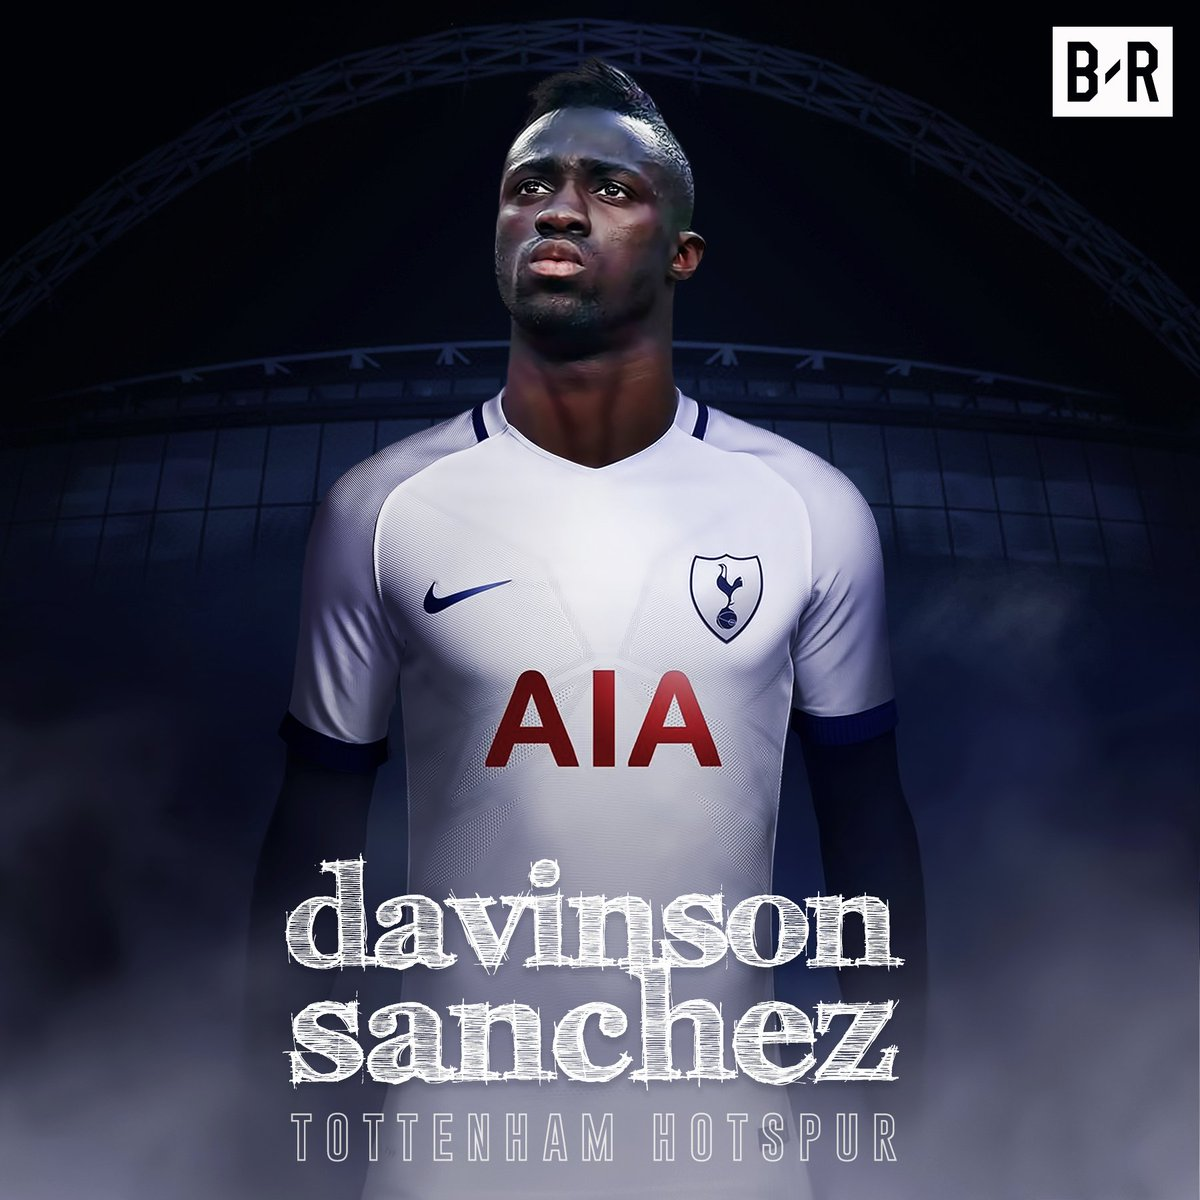 Tottenham announce they have reached an agreement with Ajax for Davinson Sanchez! The move is subject to a medical and a work permit.